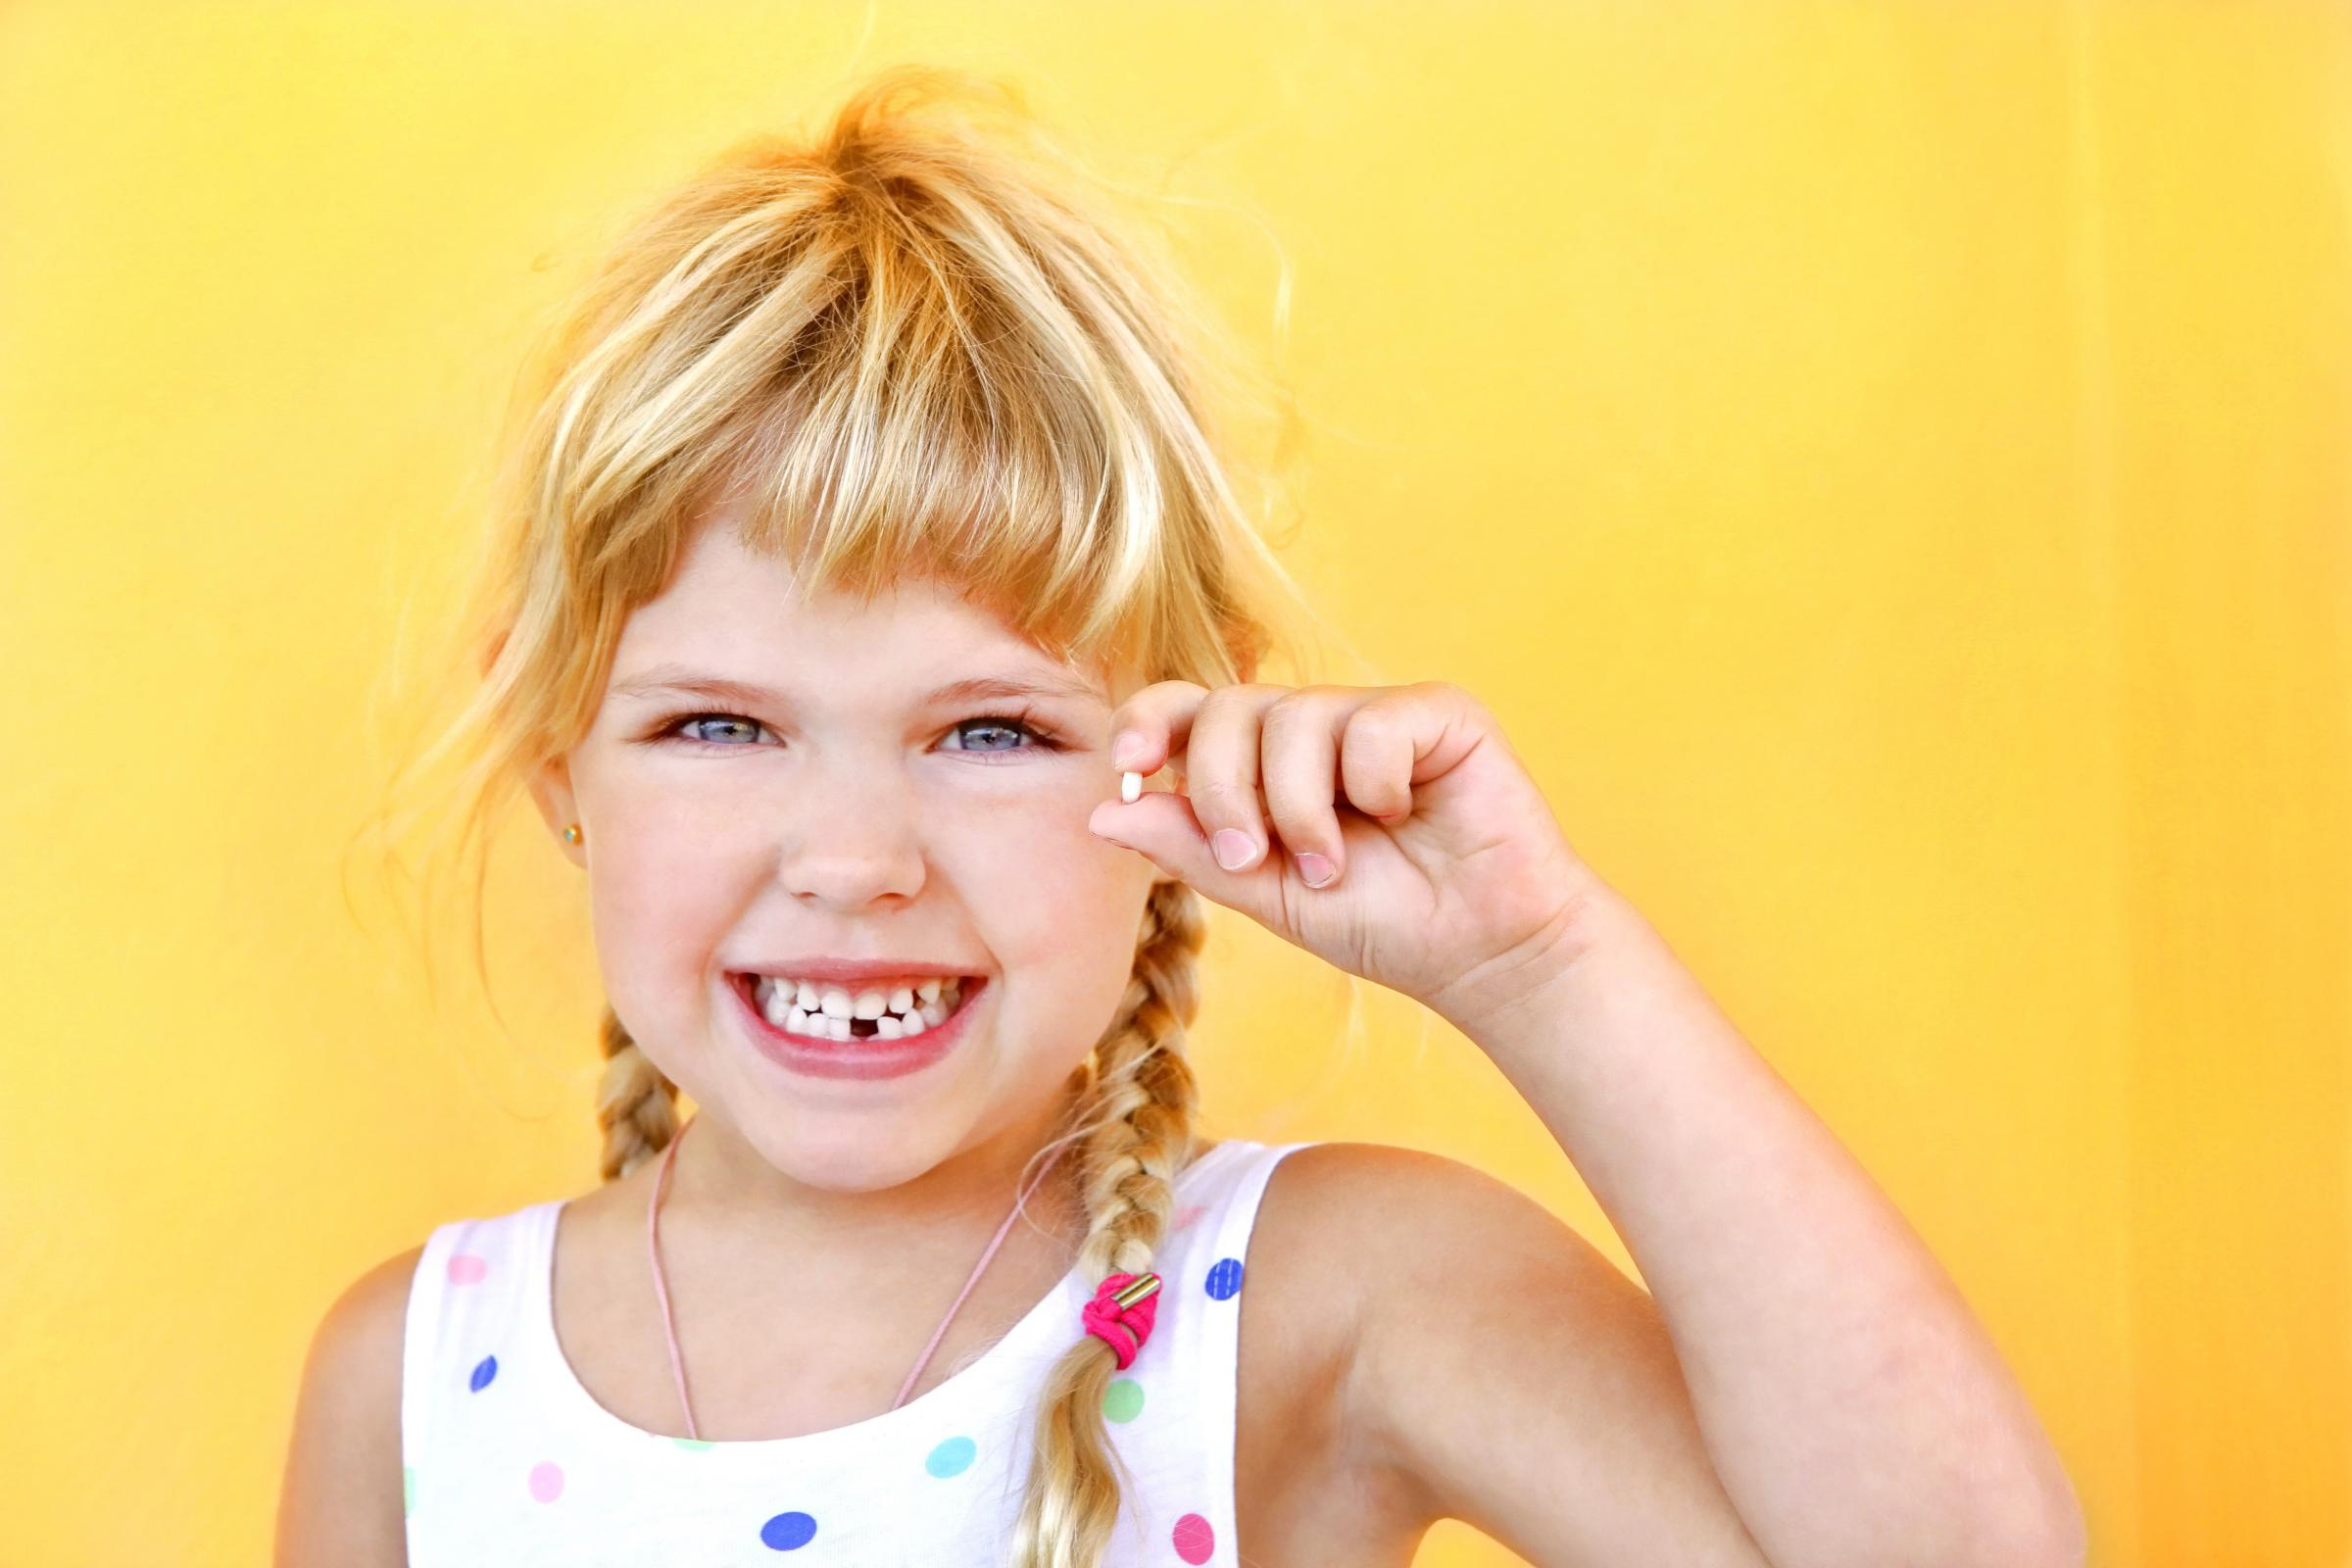 On average, Warrington parents give £1.27 to their kids per tooth